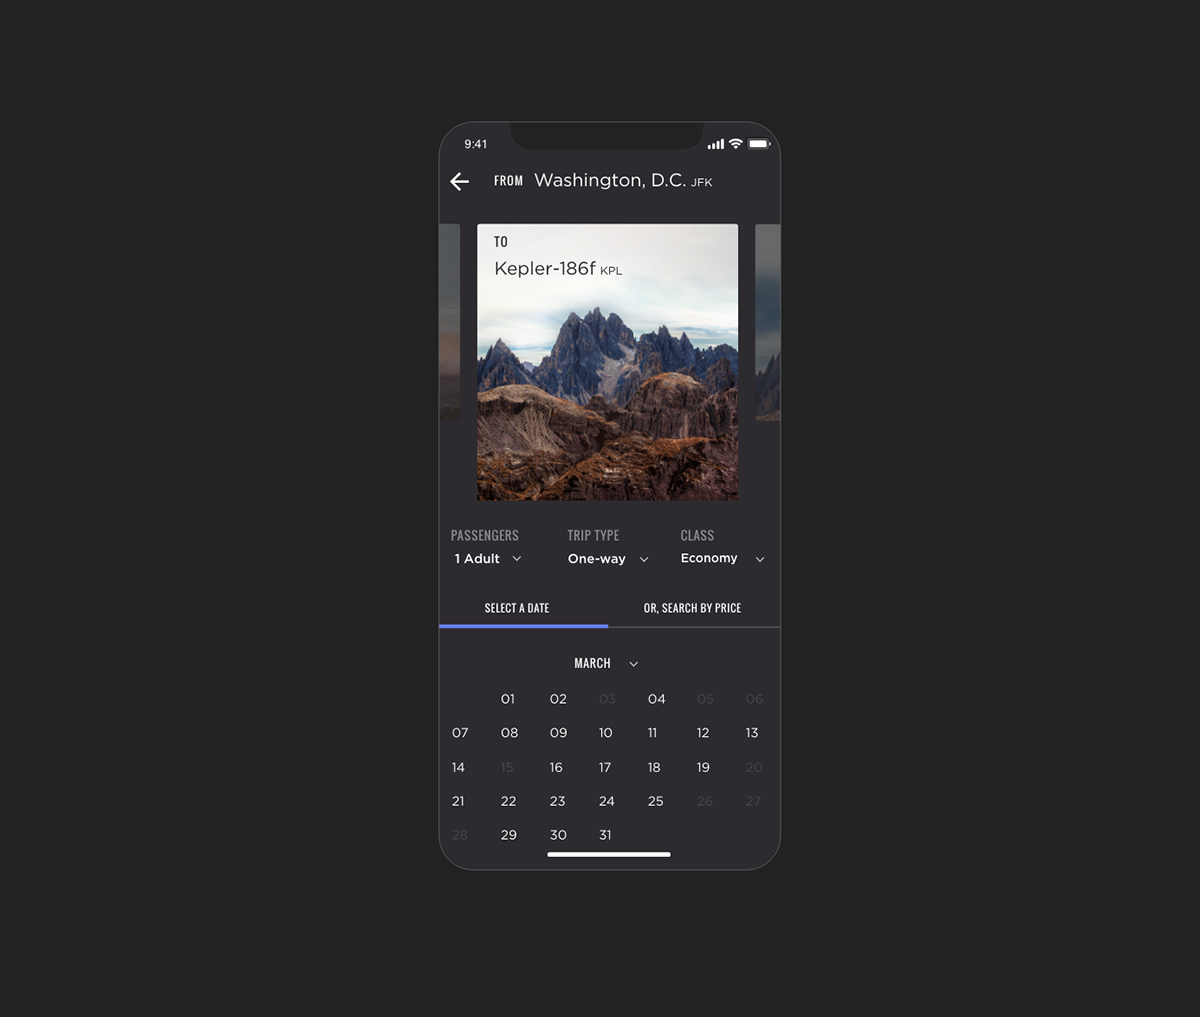 SPACEDchallenge spaced #SPACEDchallenge app Travel App Booking user experience Epicurrence